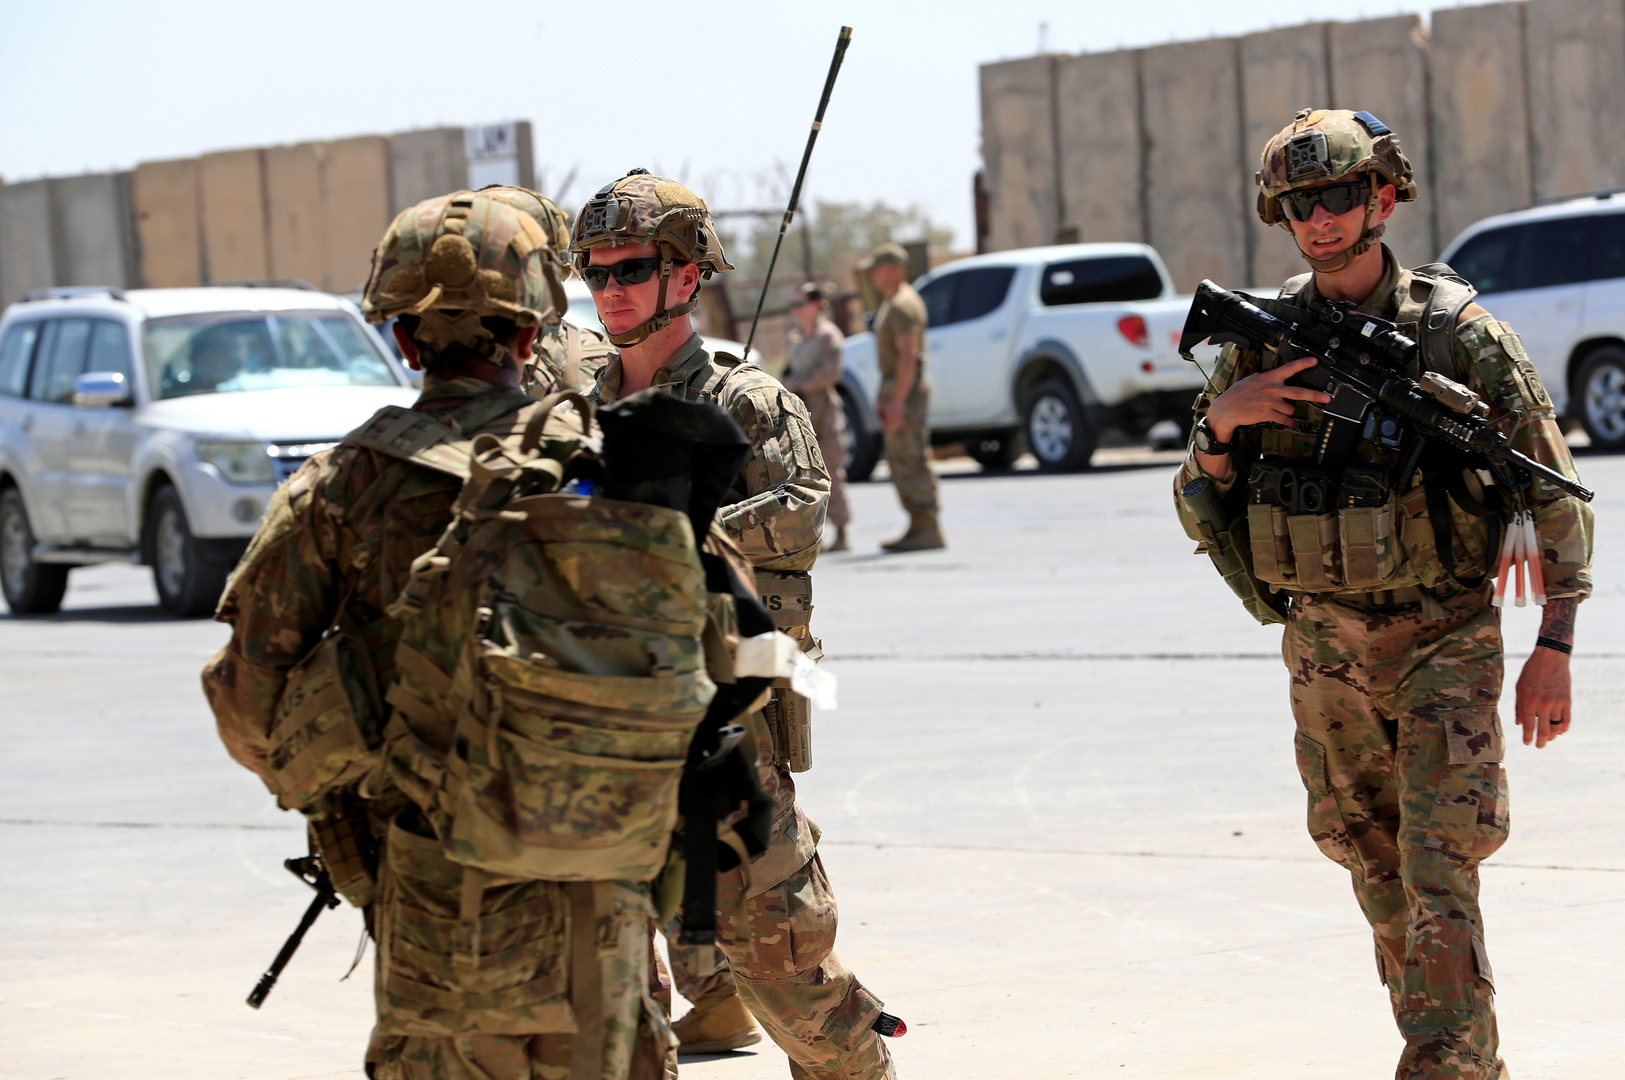 American troops in the Middle East